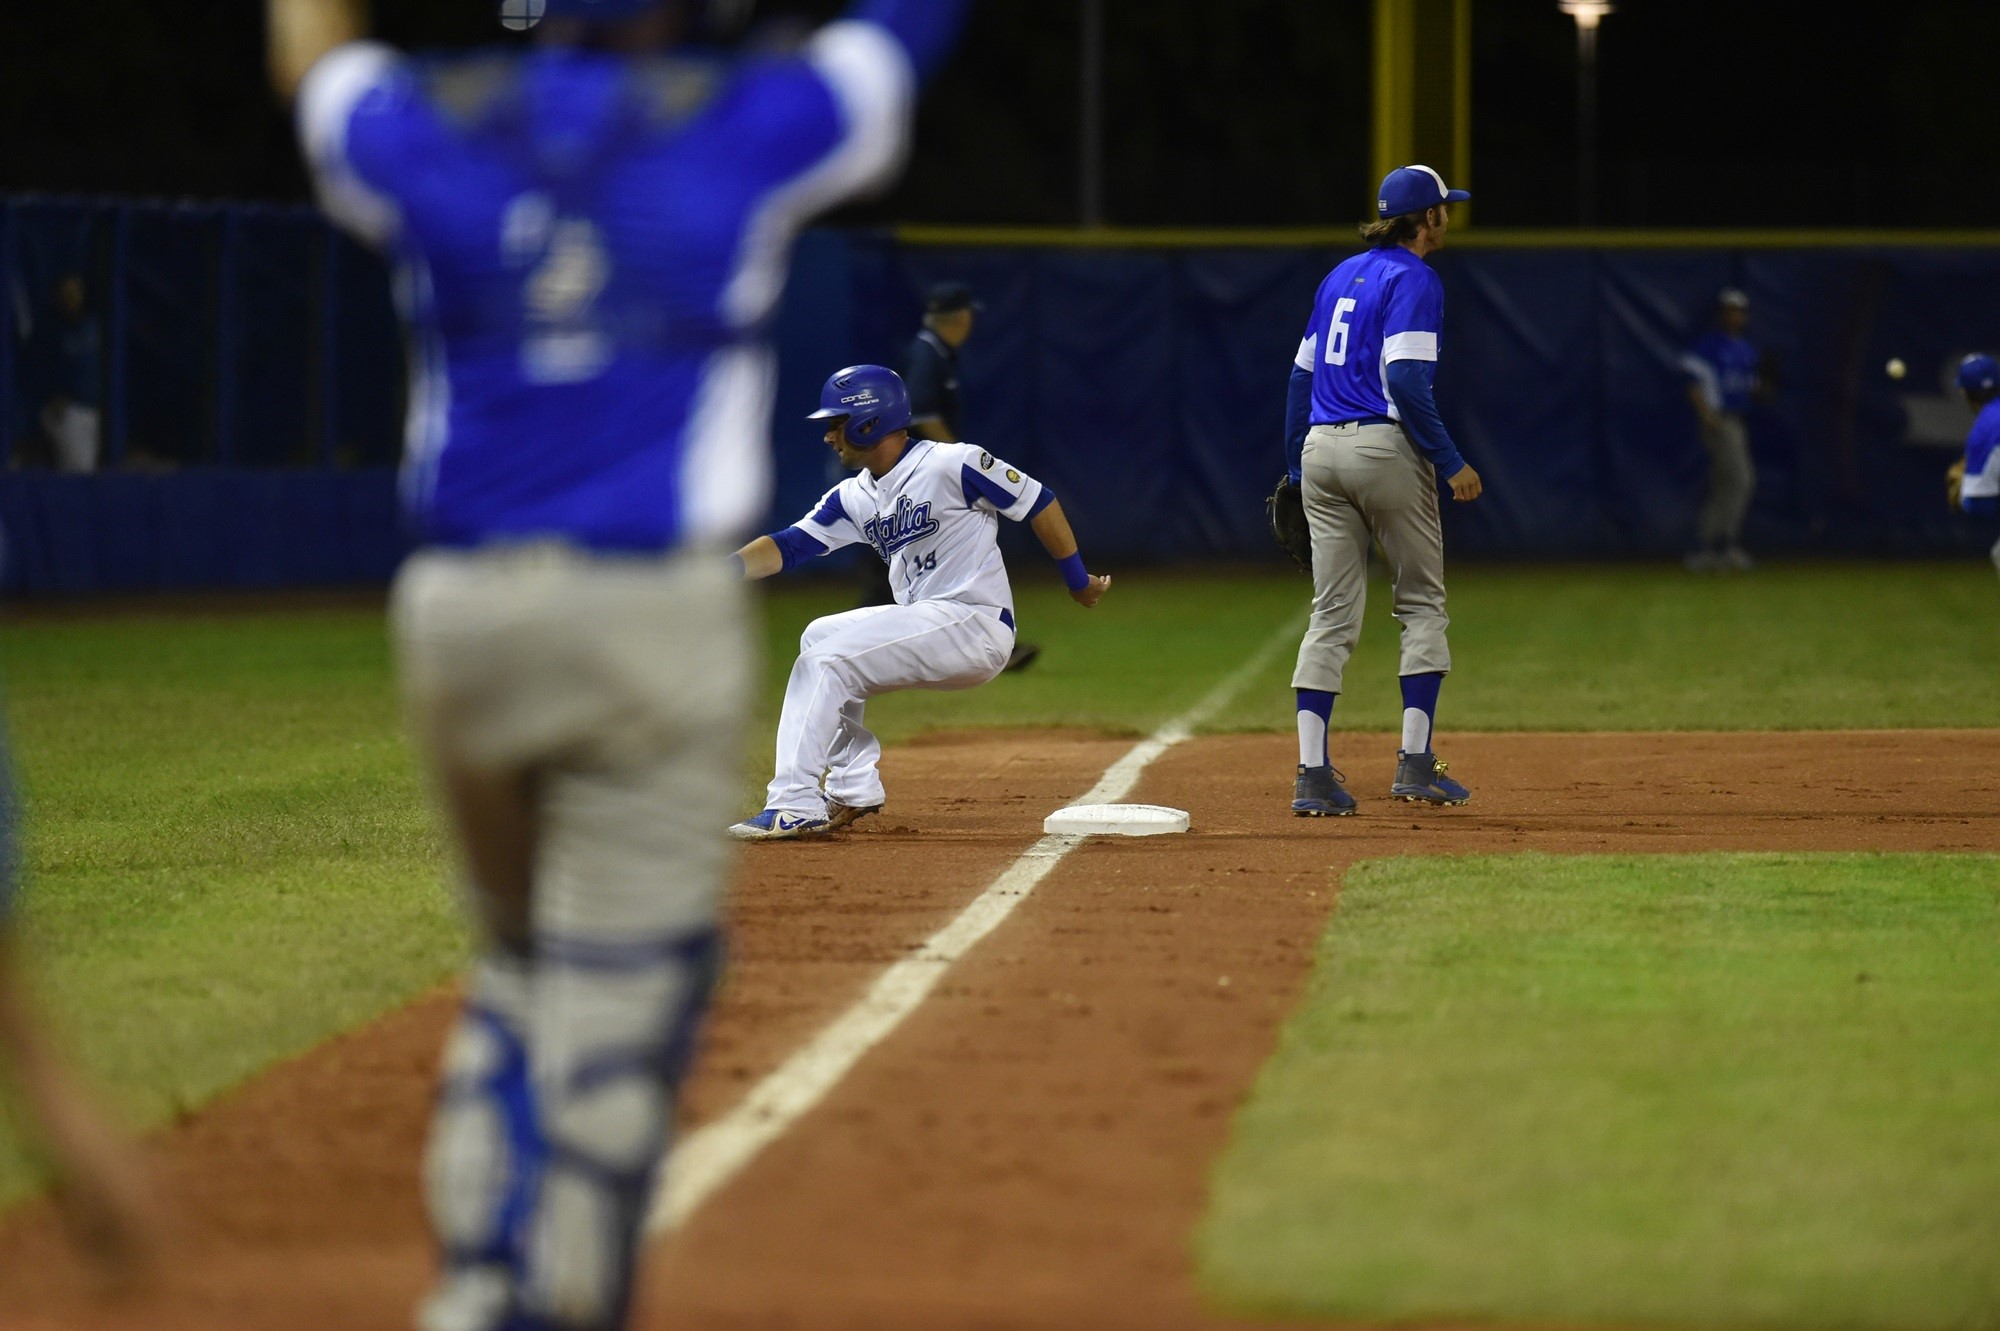 Italy stranded as many as three runners in scoring position with less than two outs early in the game